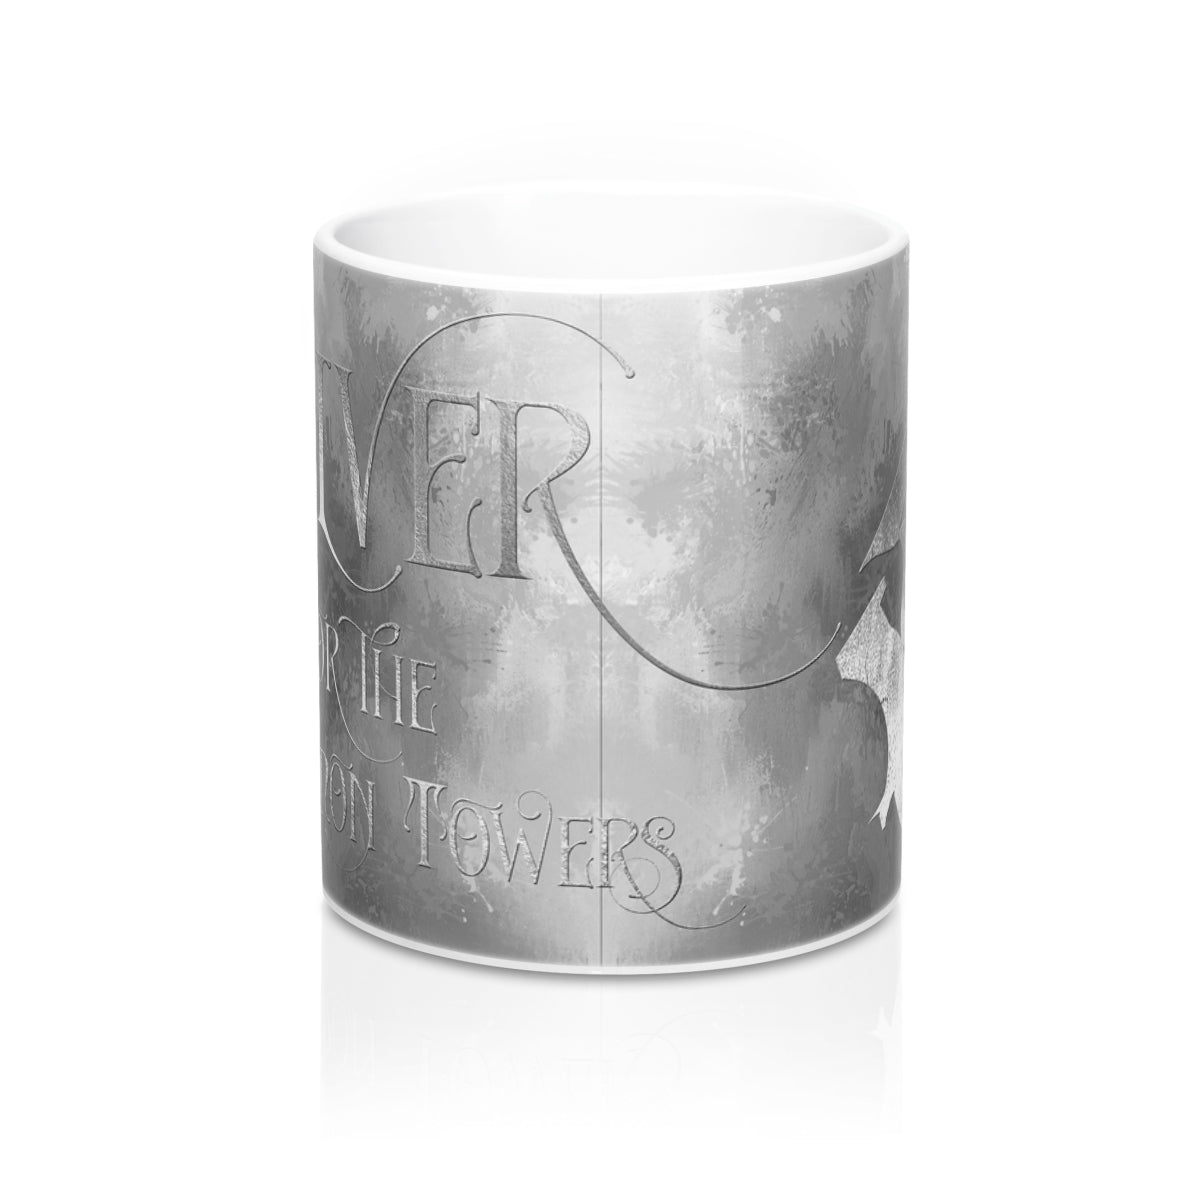 SILVER for the demon towers. Shadowhunter Children's Rhyme Mug - LitLifeCo.